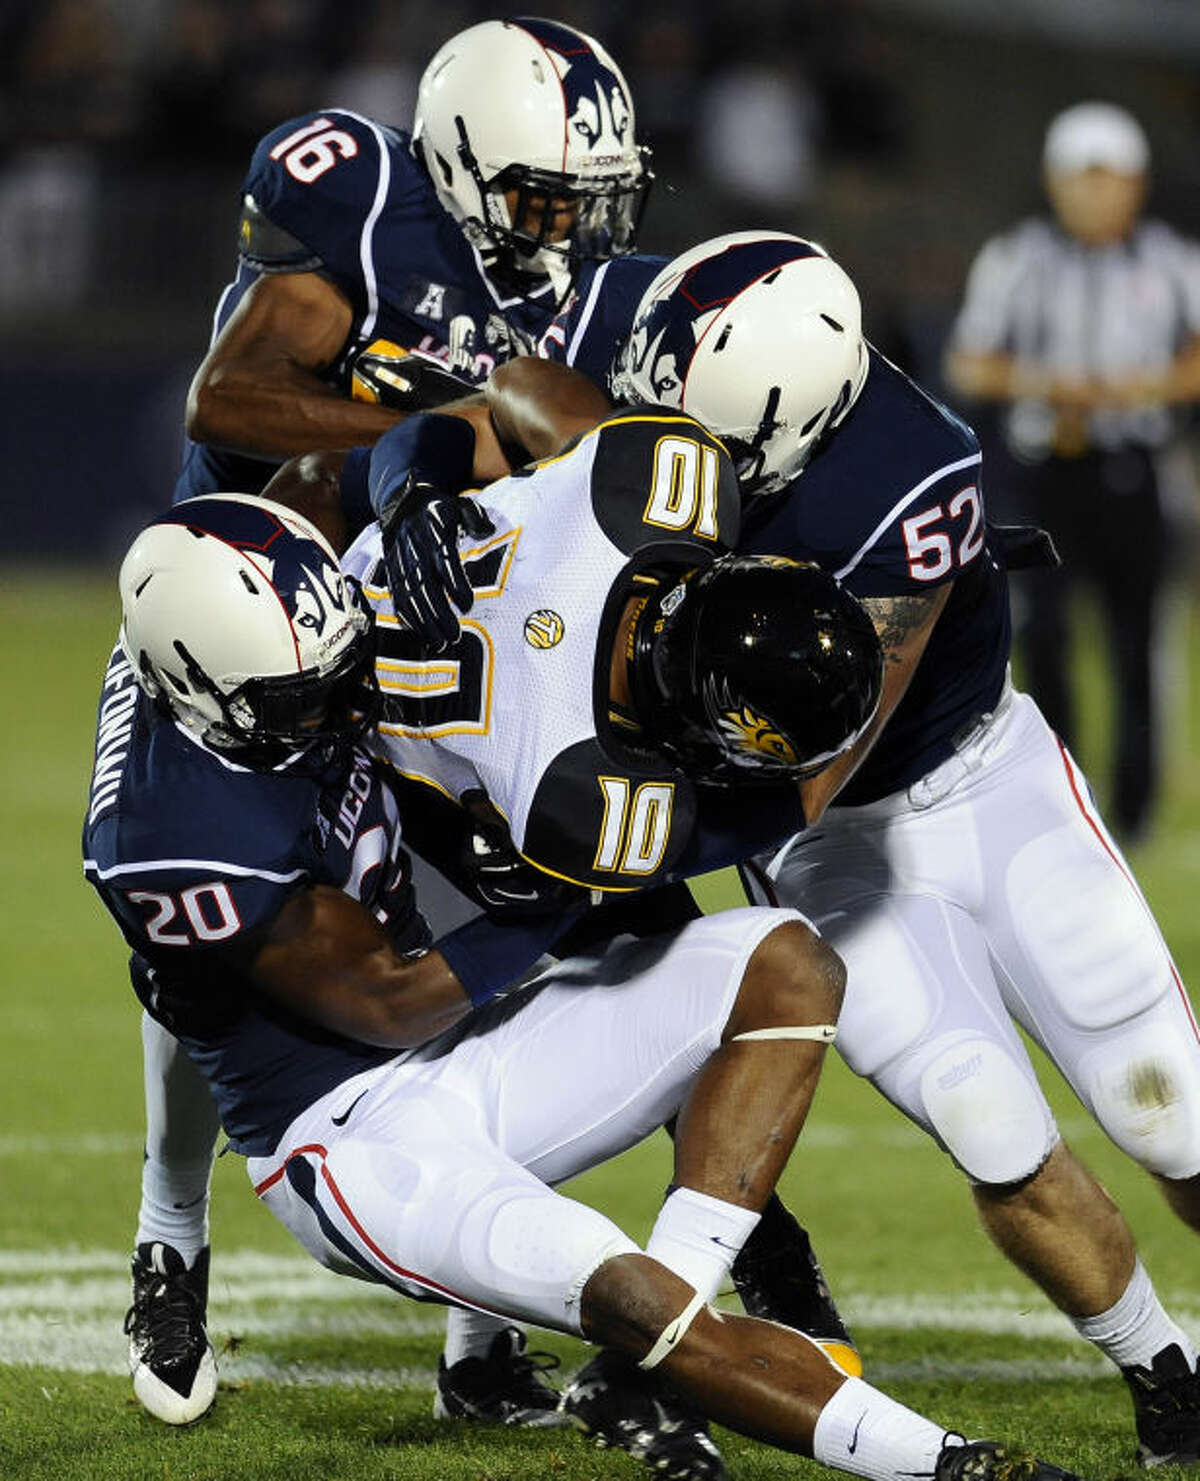 Towson wide receiver Spencer Wilkins (10), is pulled down by Connecticut safety Obi Melifonwu (20), Connecticut cornerback Byron Jones (16), and Connecticut linebacker Ryan Donohue (52), during the first half of an NCAA college football game at Rentschler Field in East Hartford, Conn., Thursday, Aug. 29, 2013. (AP Photo/Jessica Hill)